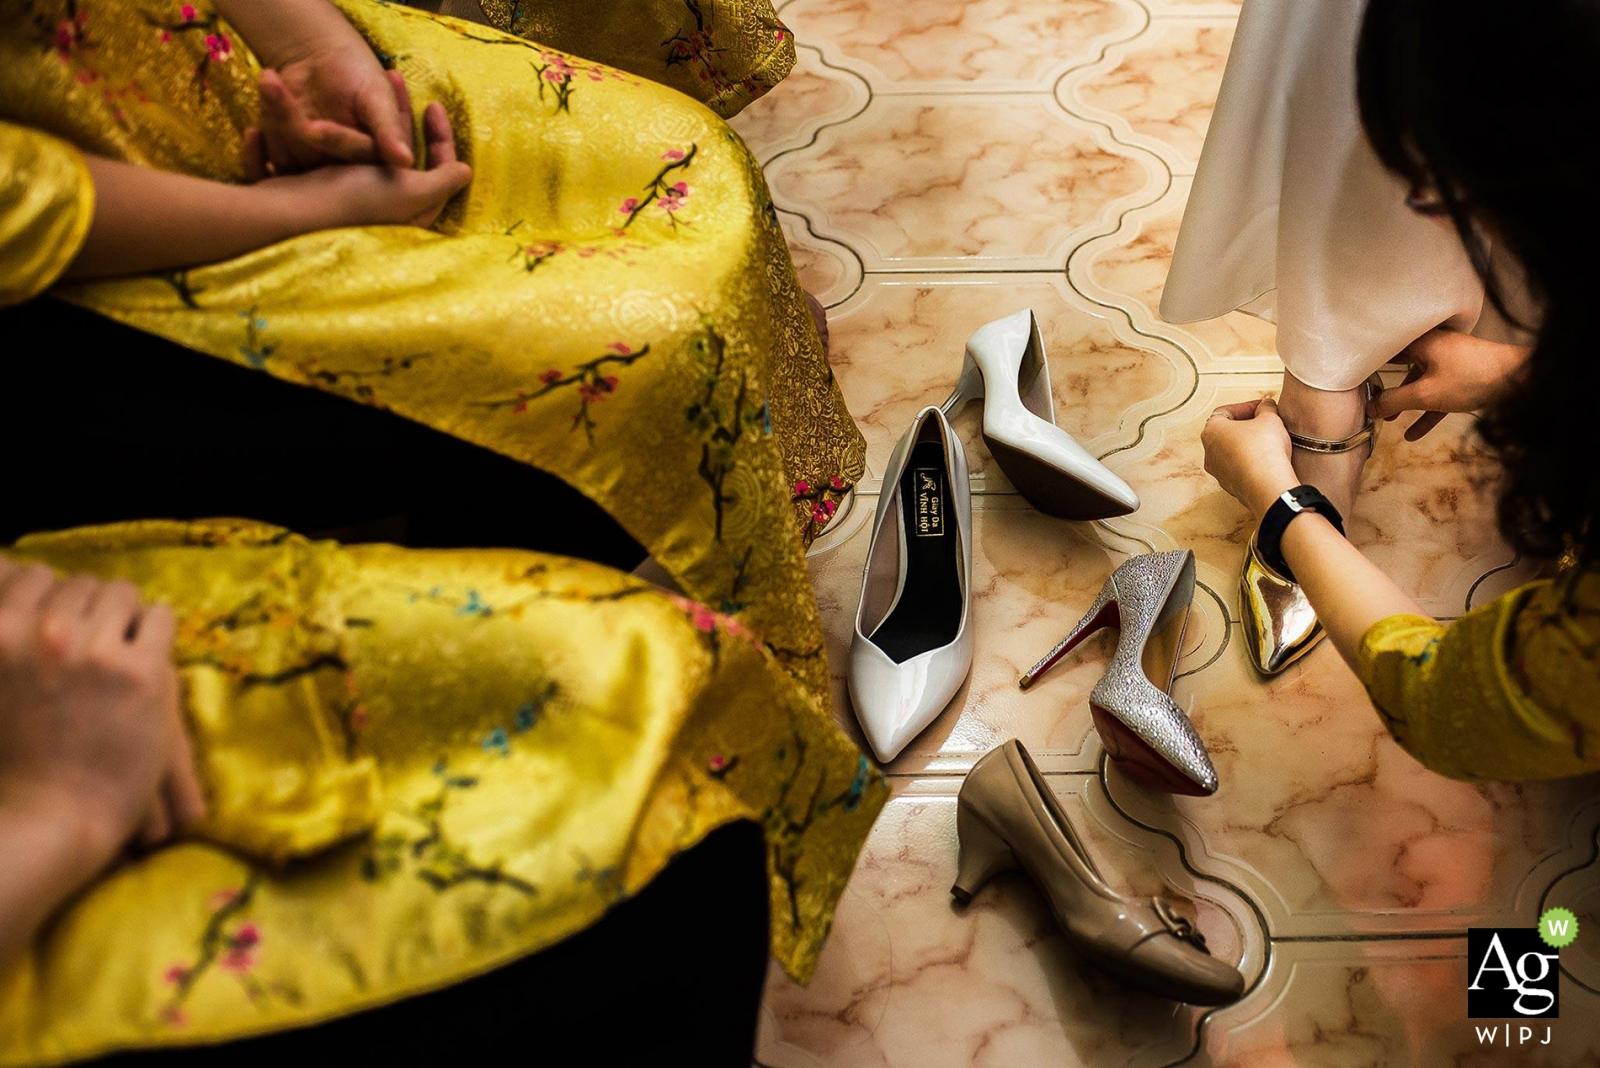 Huy Nguyen is an artistic wedding photographer for